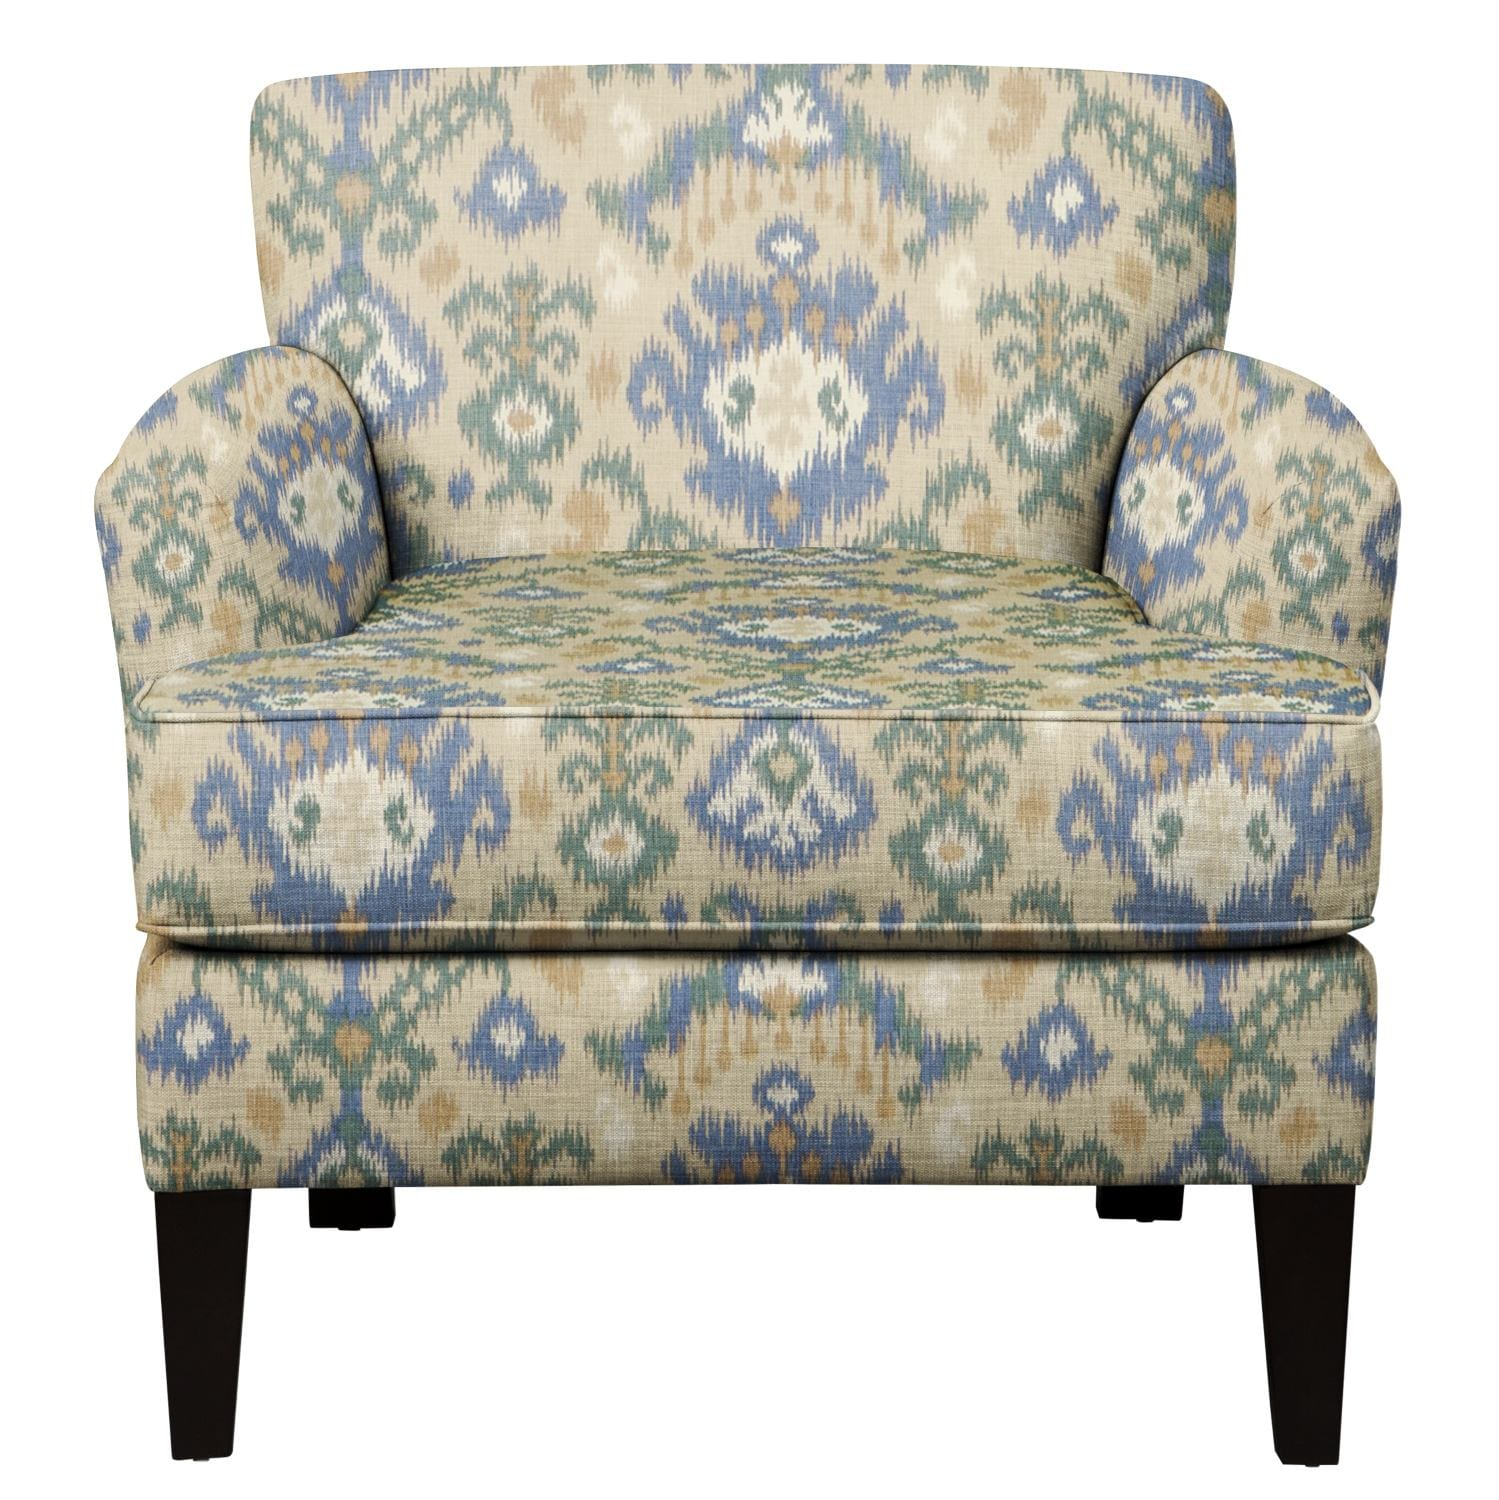 Living Room Furniture - Marcus Chair w/ Blurred Lines Big Sky Fabric